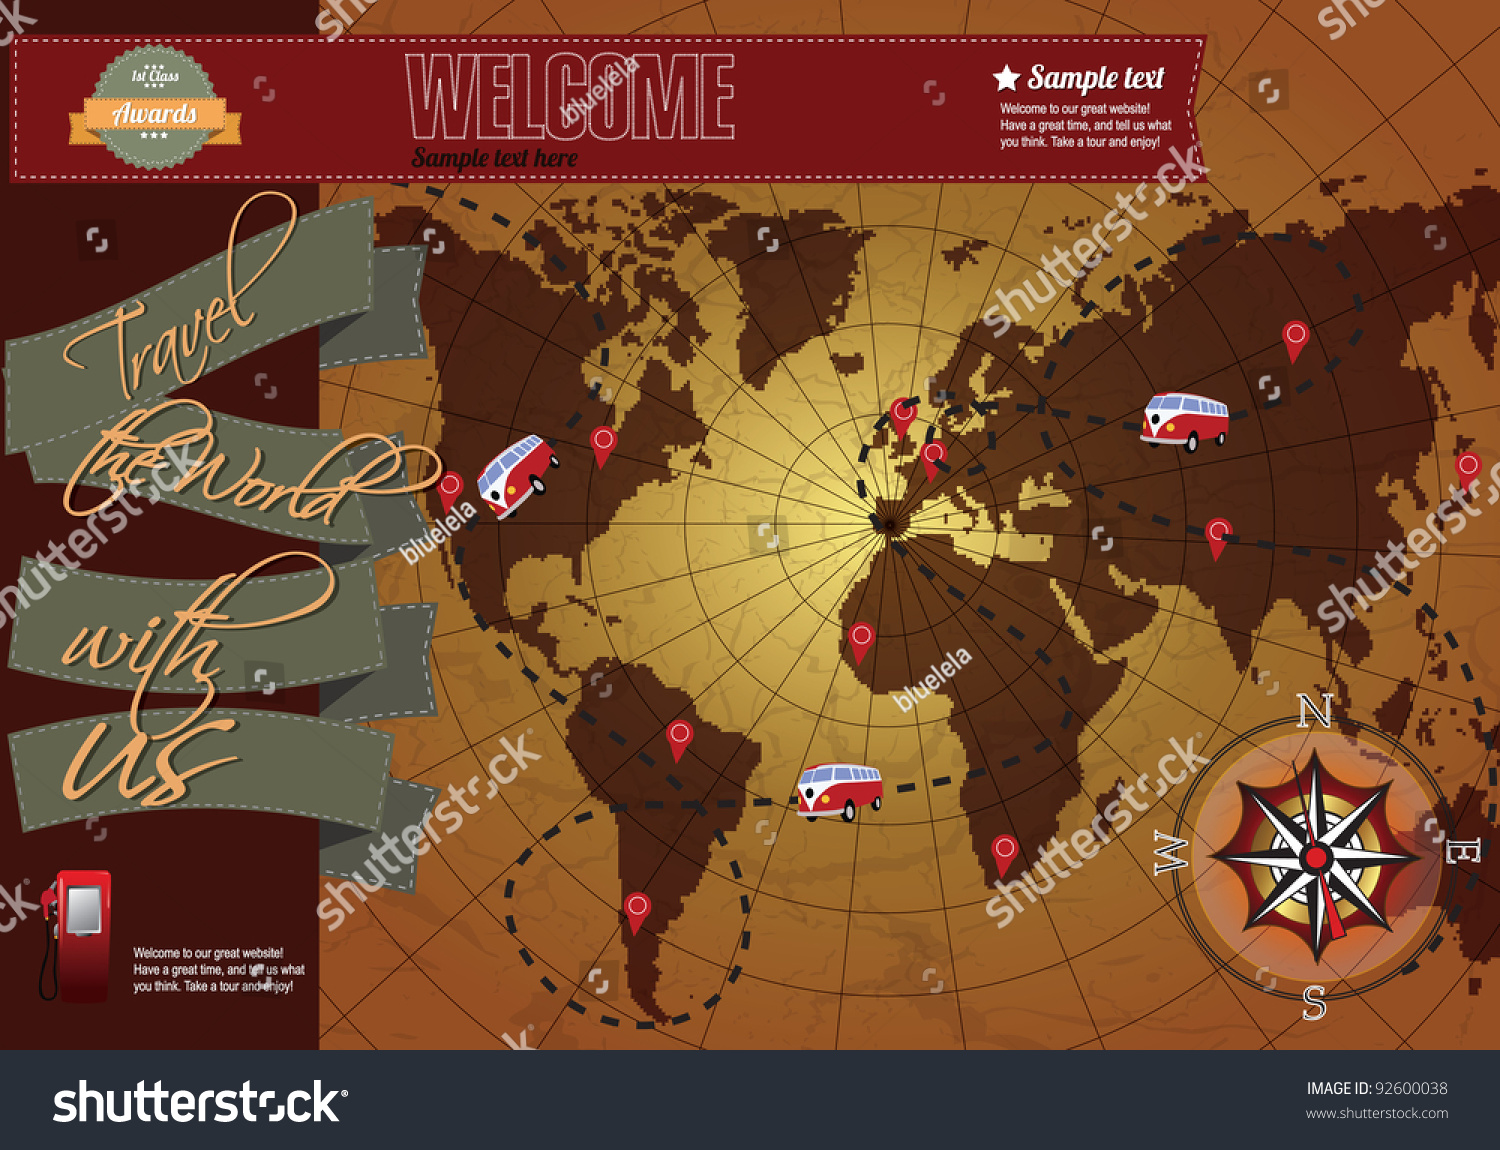 Website Template Elements World Map Compass Stock Photo Photo